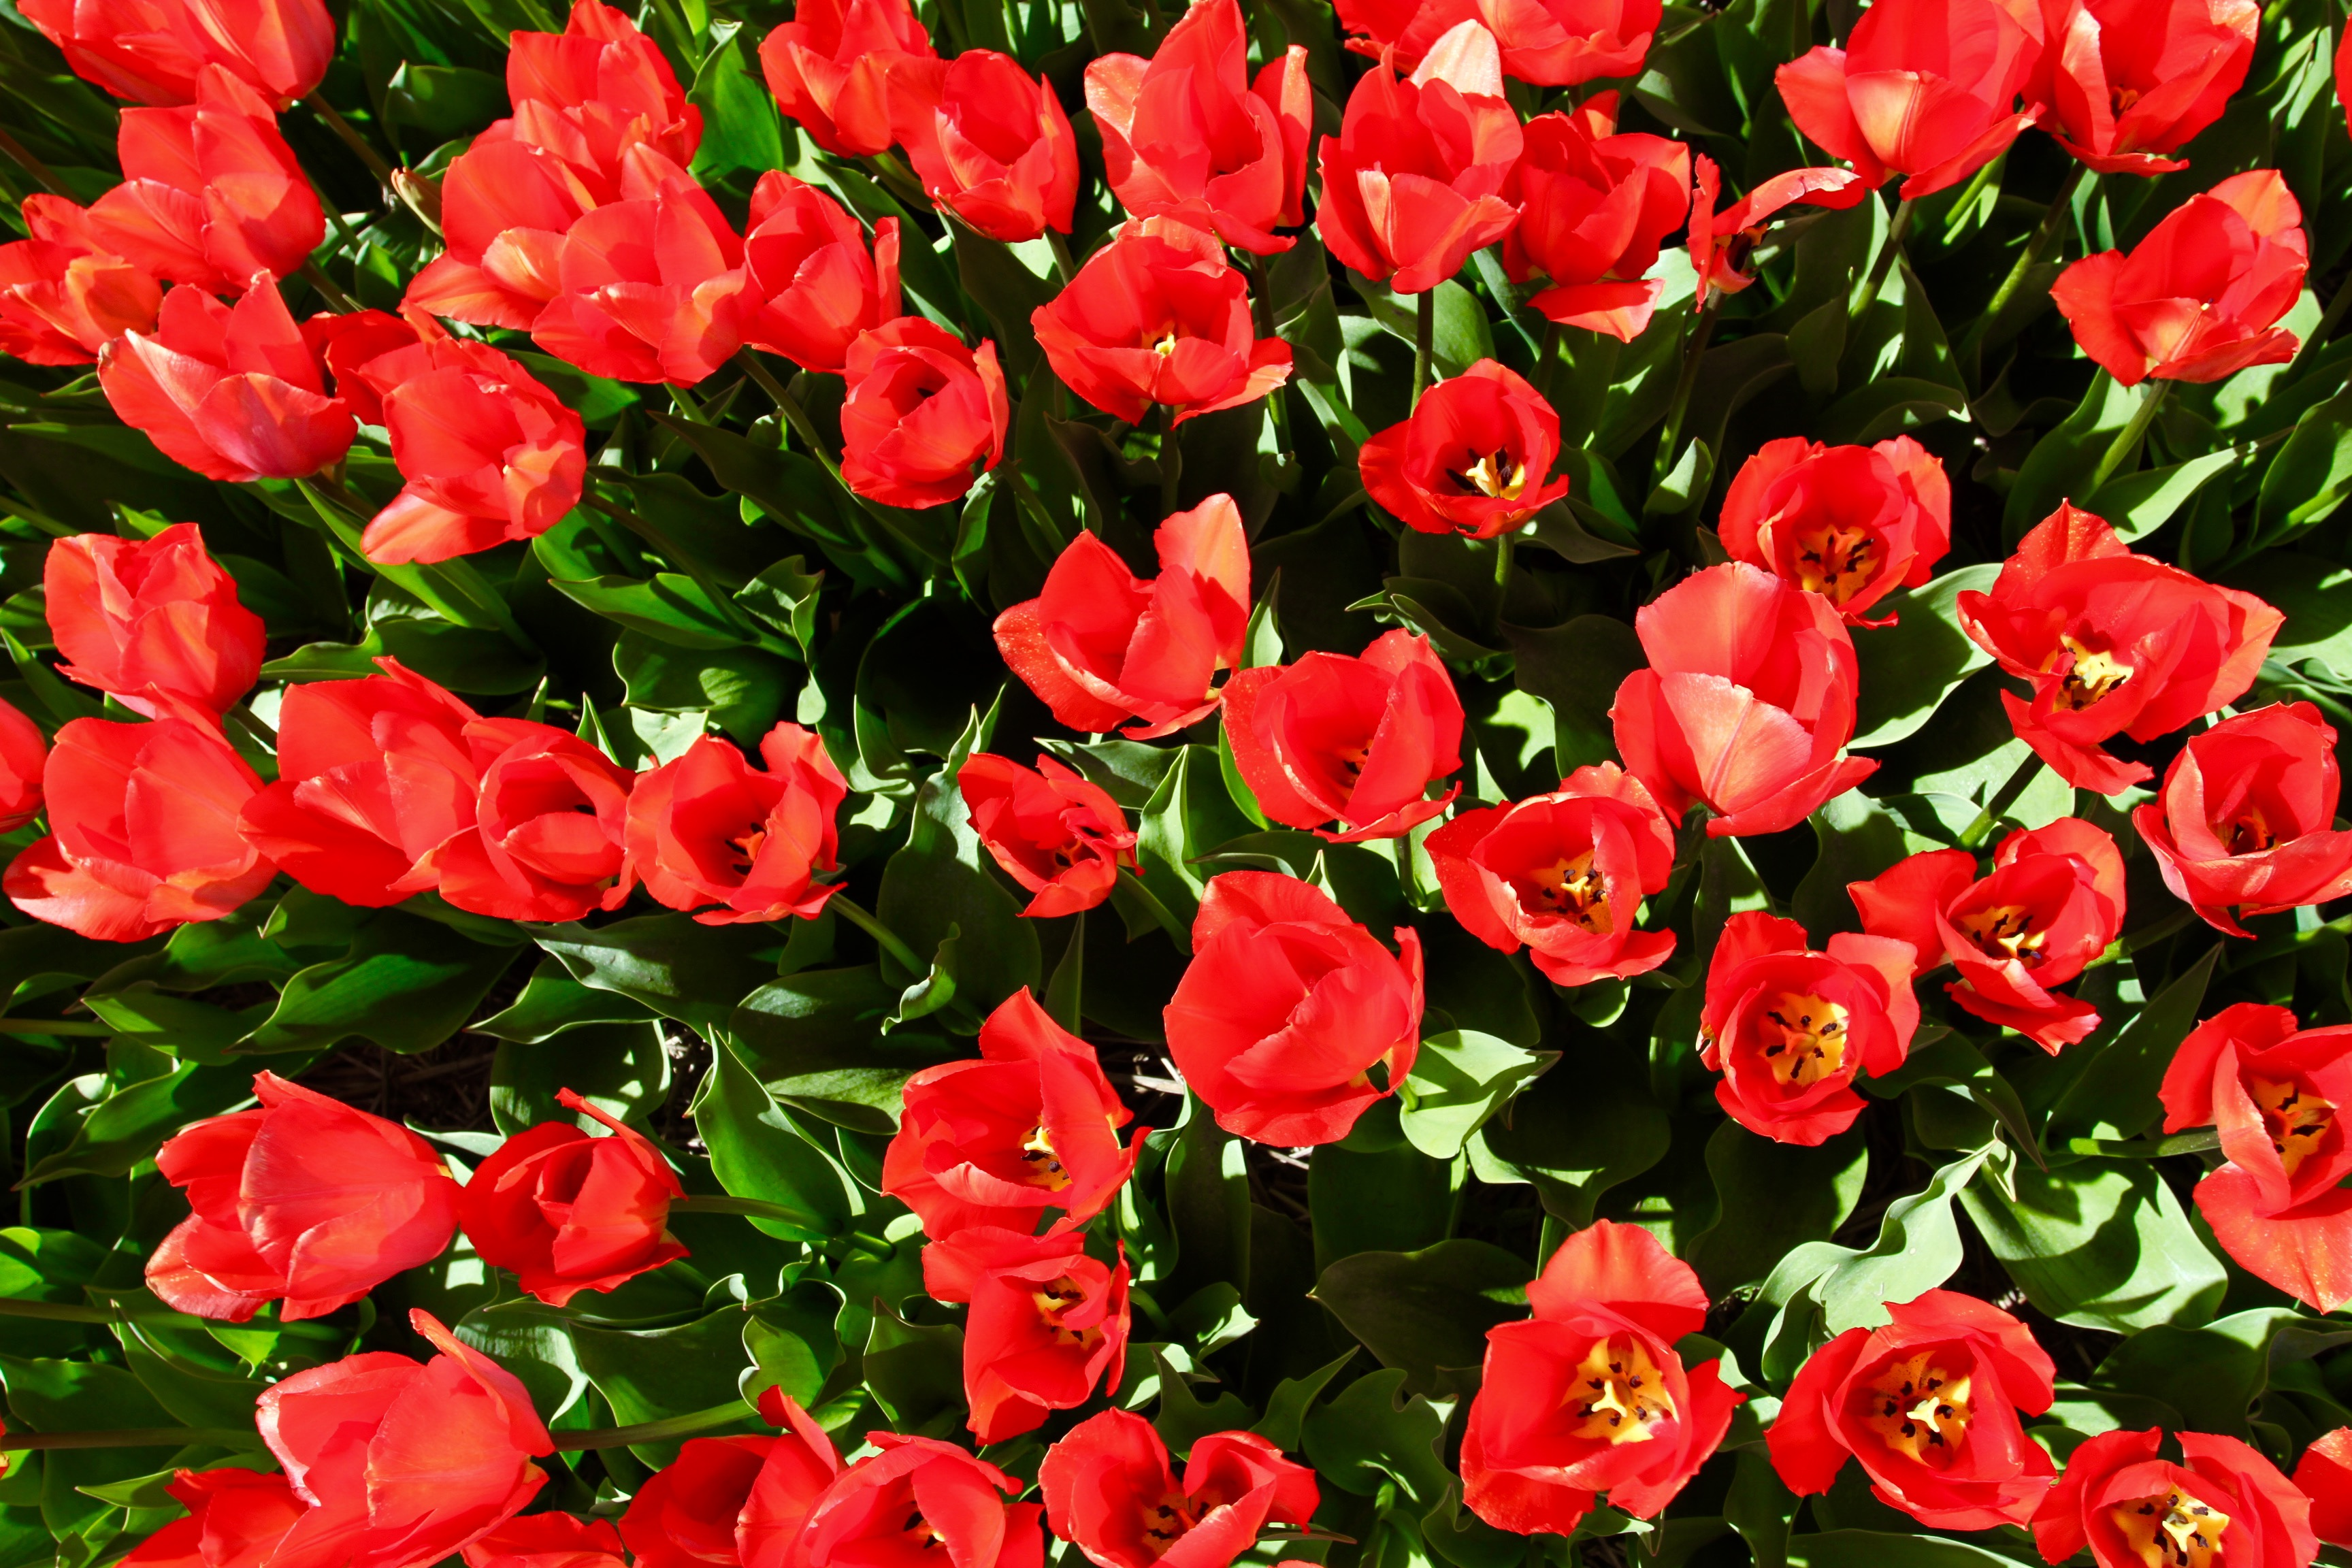 Tulip Mania: When Tulips Cost As Much As Houses